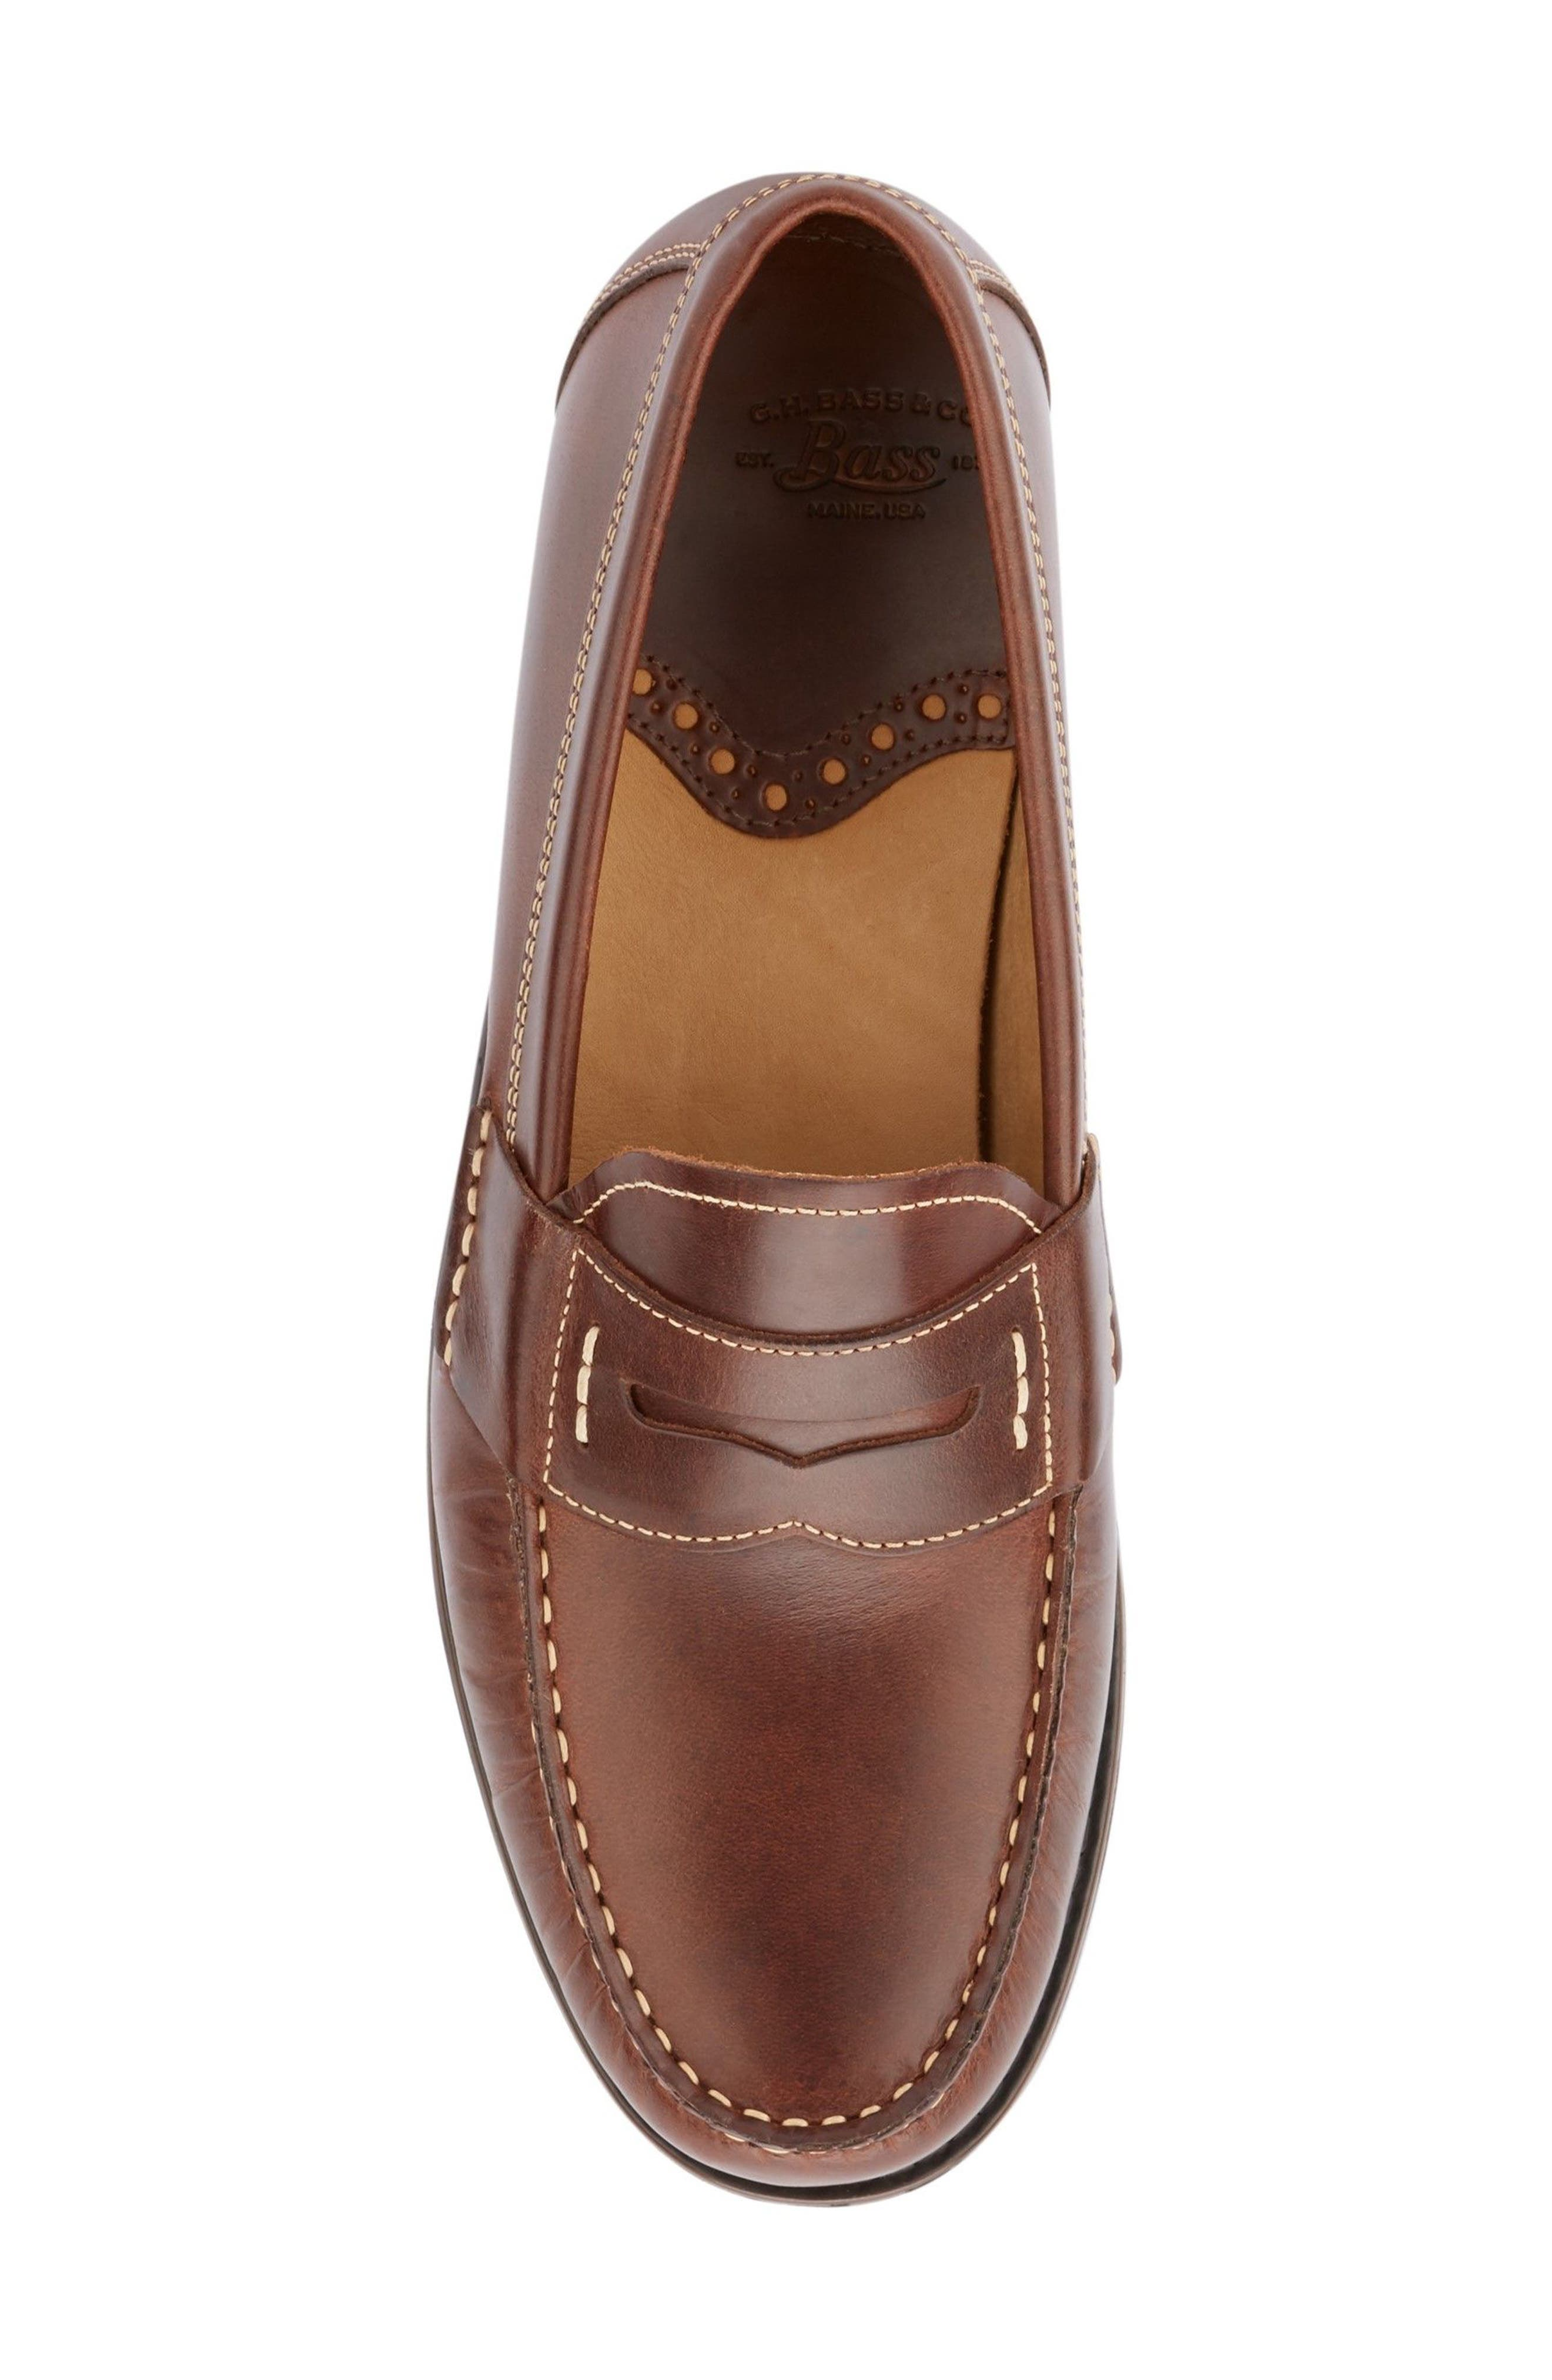 Wagner Penny Loafer,                             Alternate thumbnail 5, color,                             DARK BROWN LEATHER